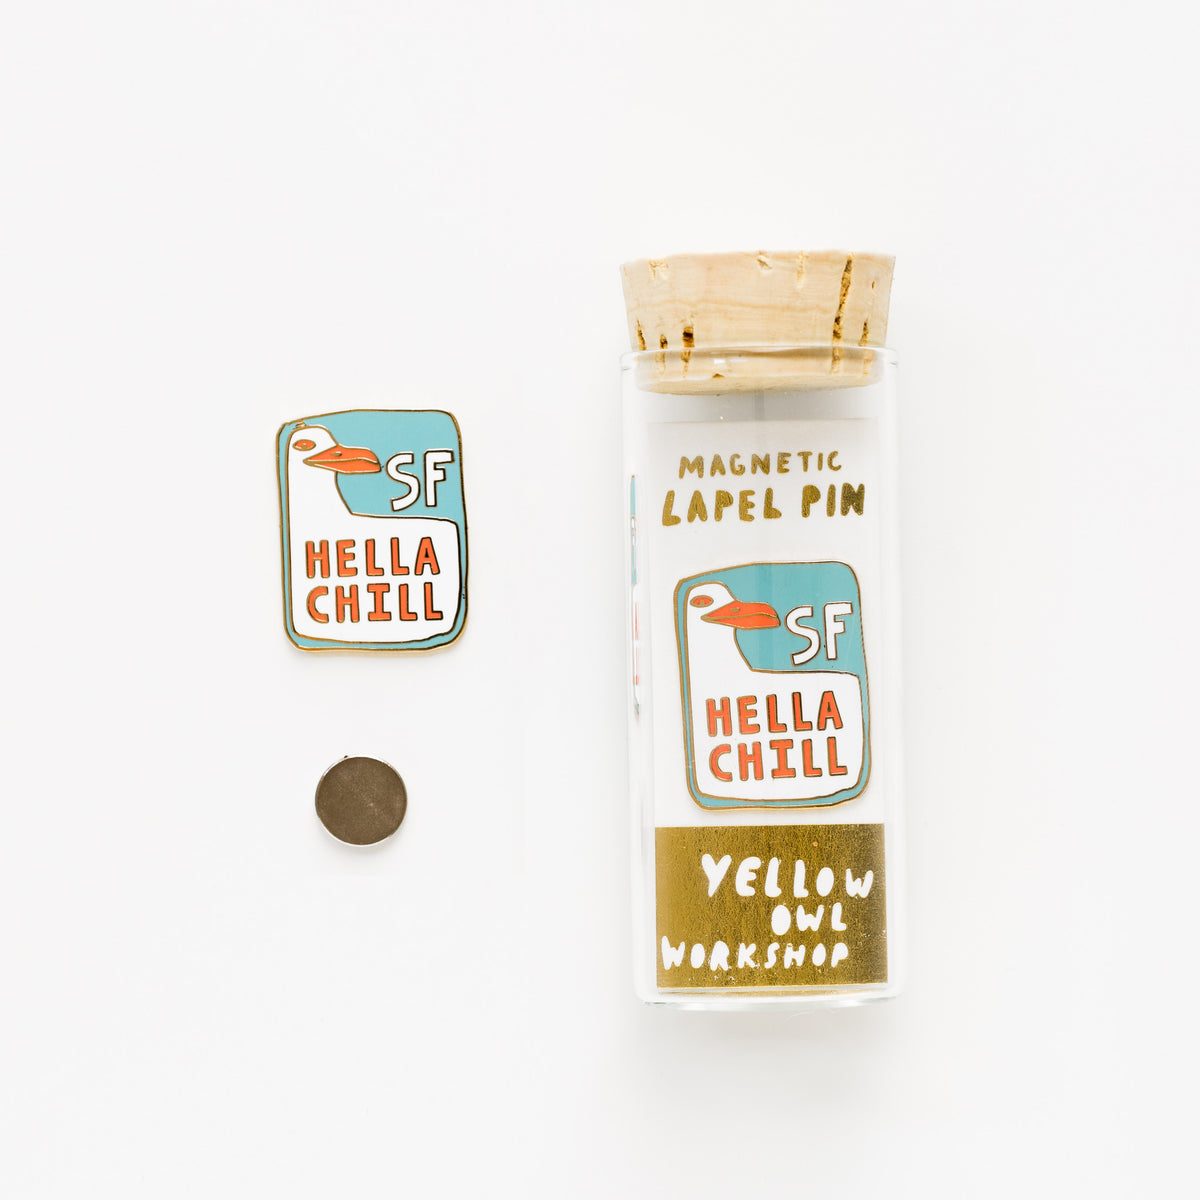 SF Hella Chill Lapel Pin